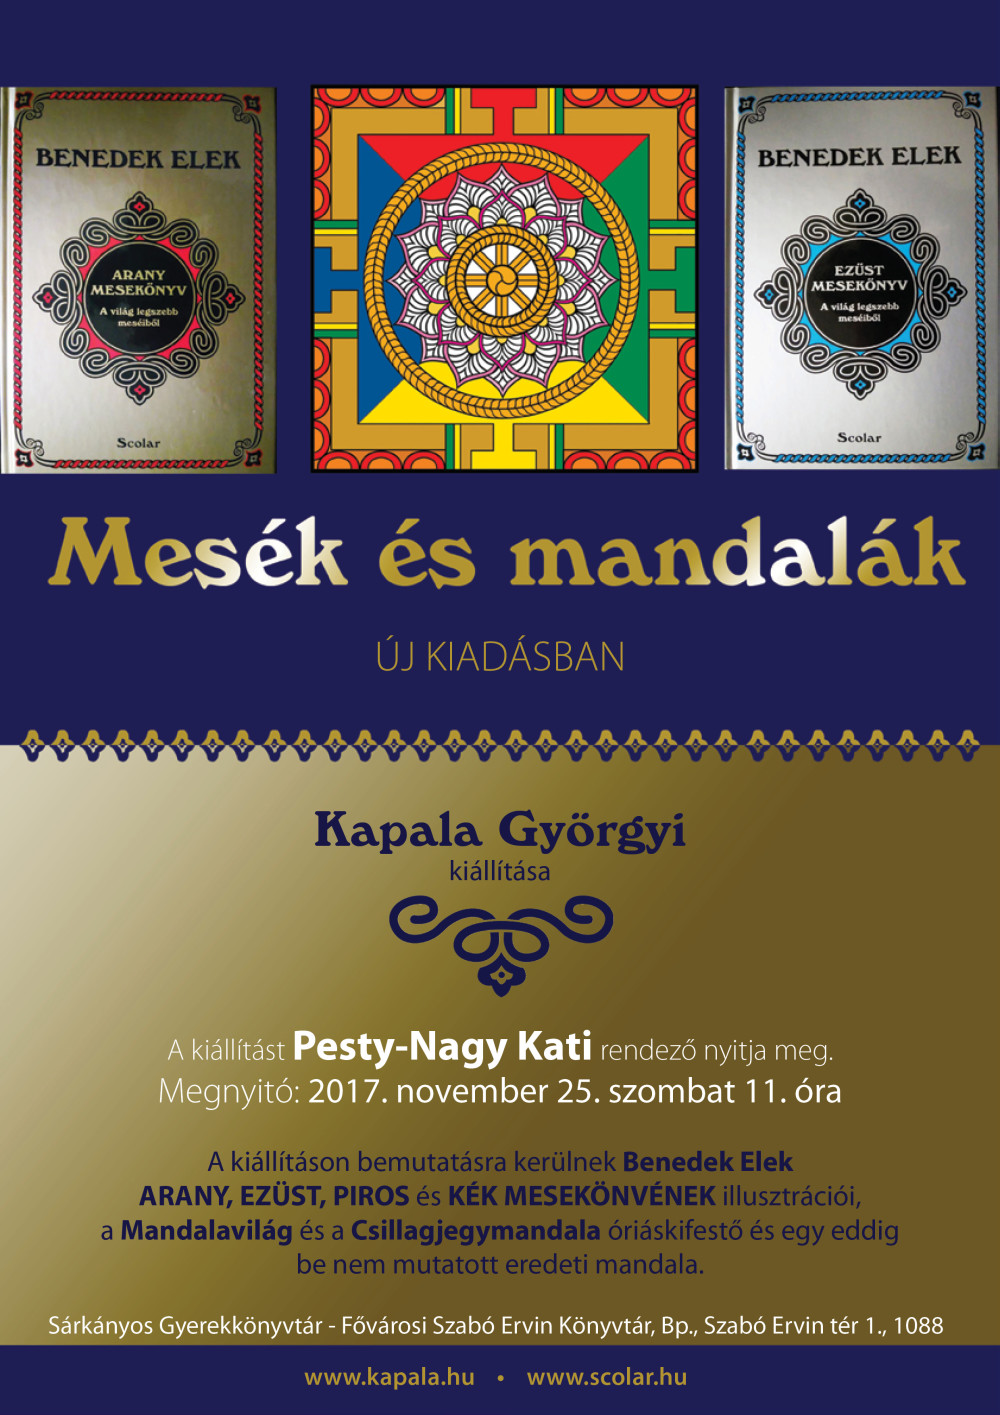 Fairy tales and mandalas – exhbition by Györgyi Kapala